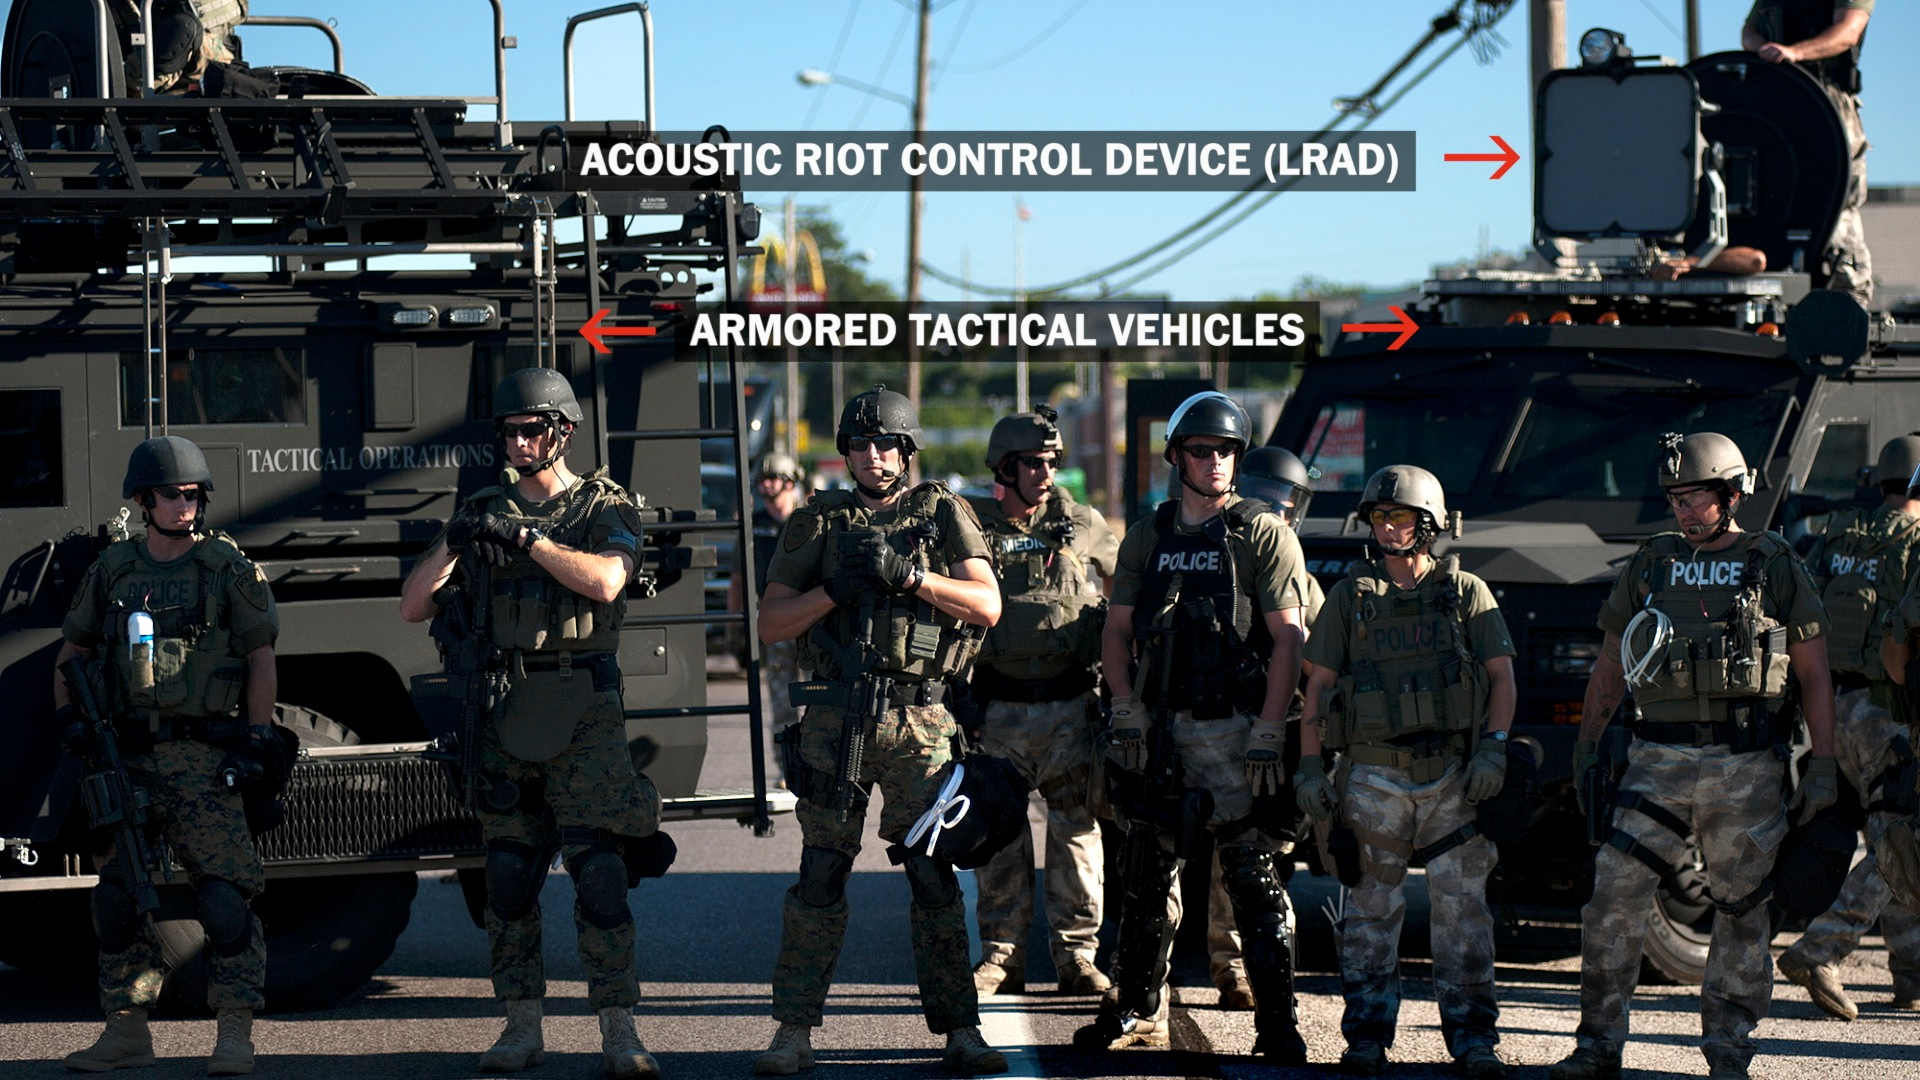 the modern militarization of police in the united states The ongoing clashes between residents of ferguson, mo and heavily armed police forces - which are equipped with m16 rifles and armored vehicles - have drawn attention to the increasing militarization of police in the united states.